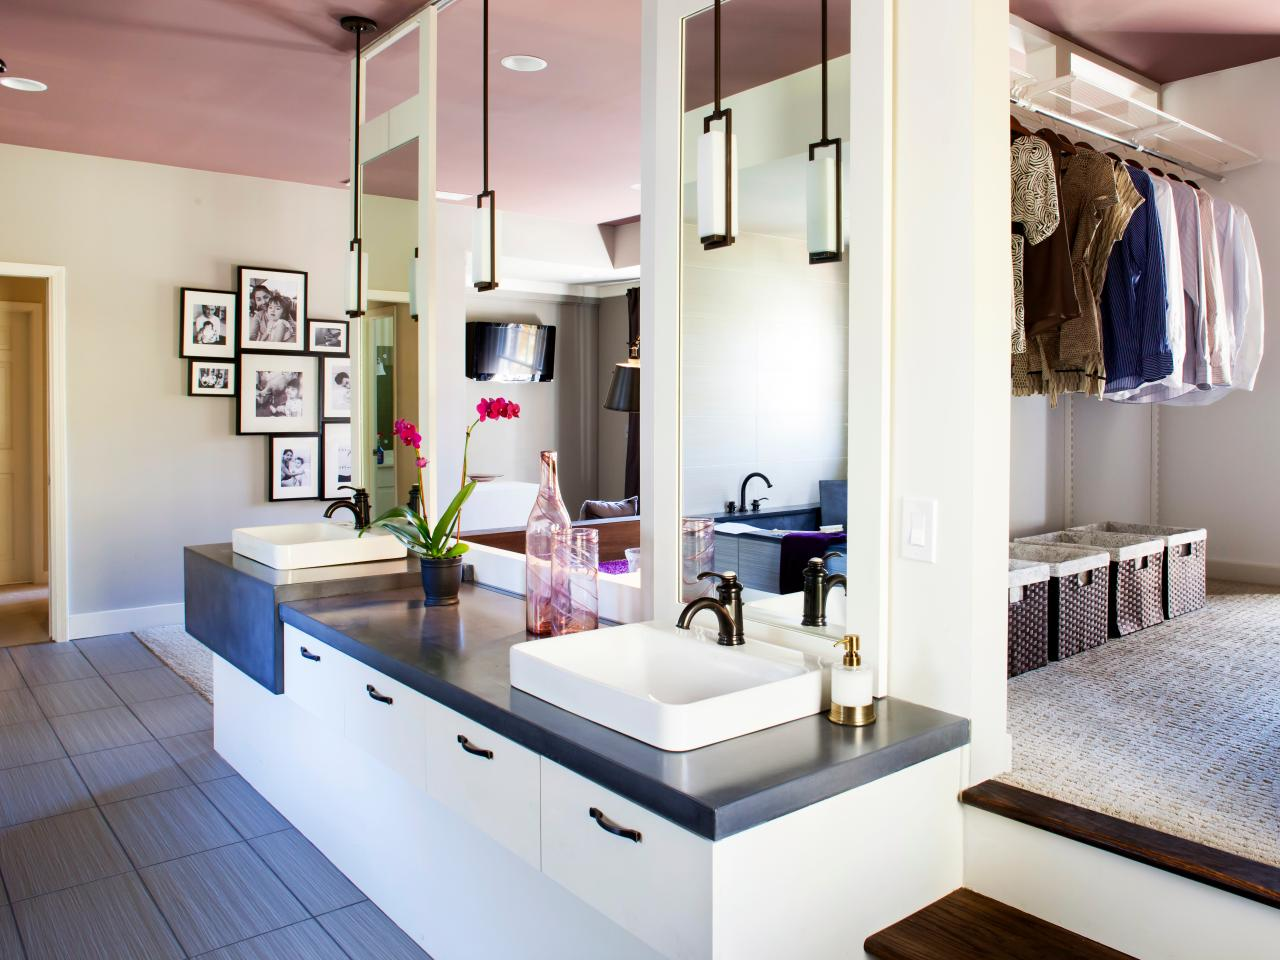 bathroom ideas hgtv walk in tub designs pictures ideas amp tips from hgtv hgtv 10424